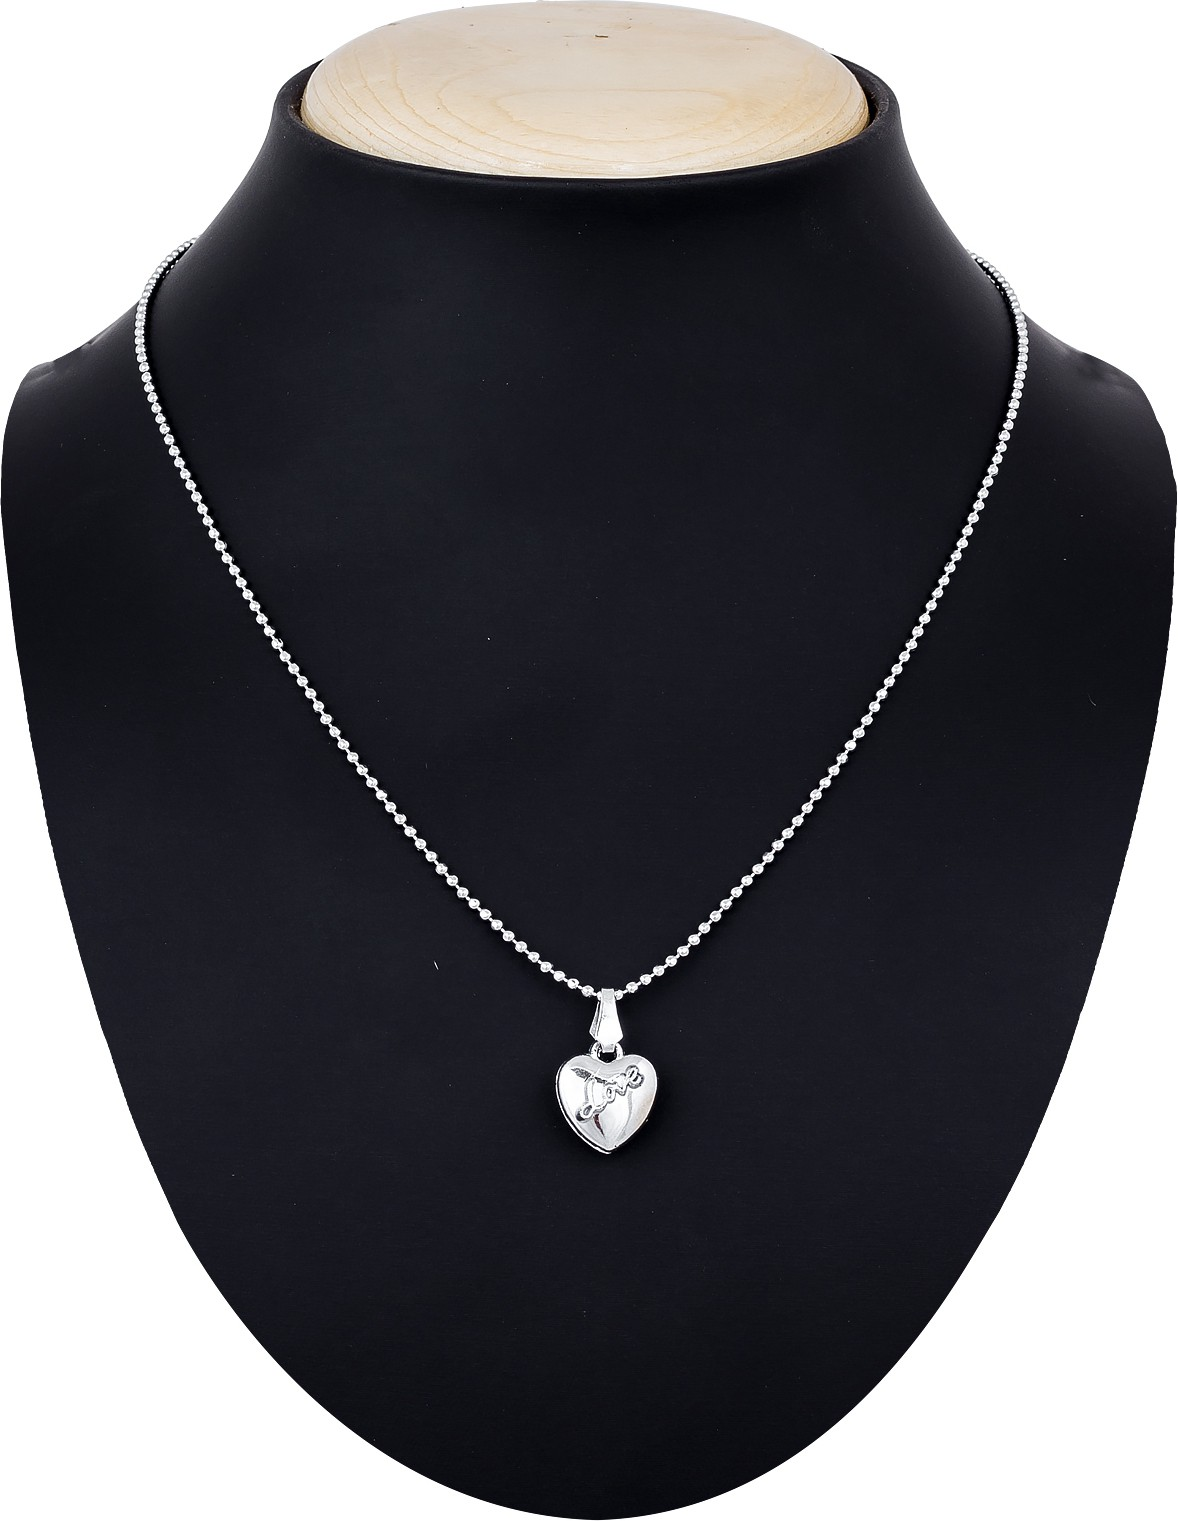 Deals - Delhi - Pendants & Lockets <br> For someone you love<br> Category - jewellery<br> Business - Flipkart.com